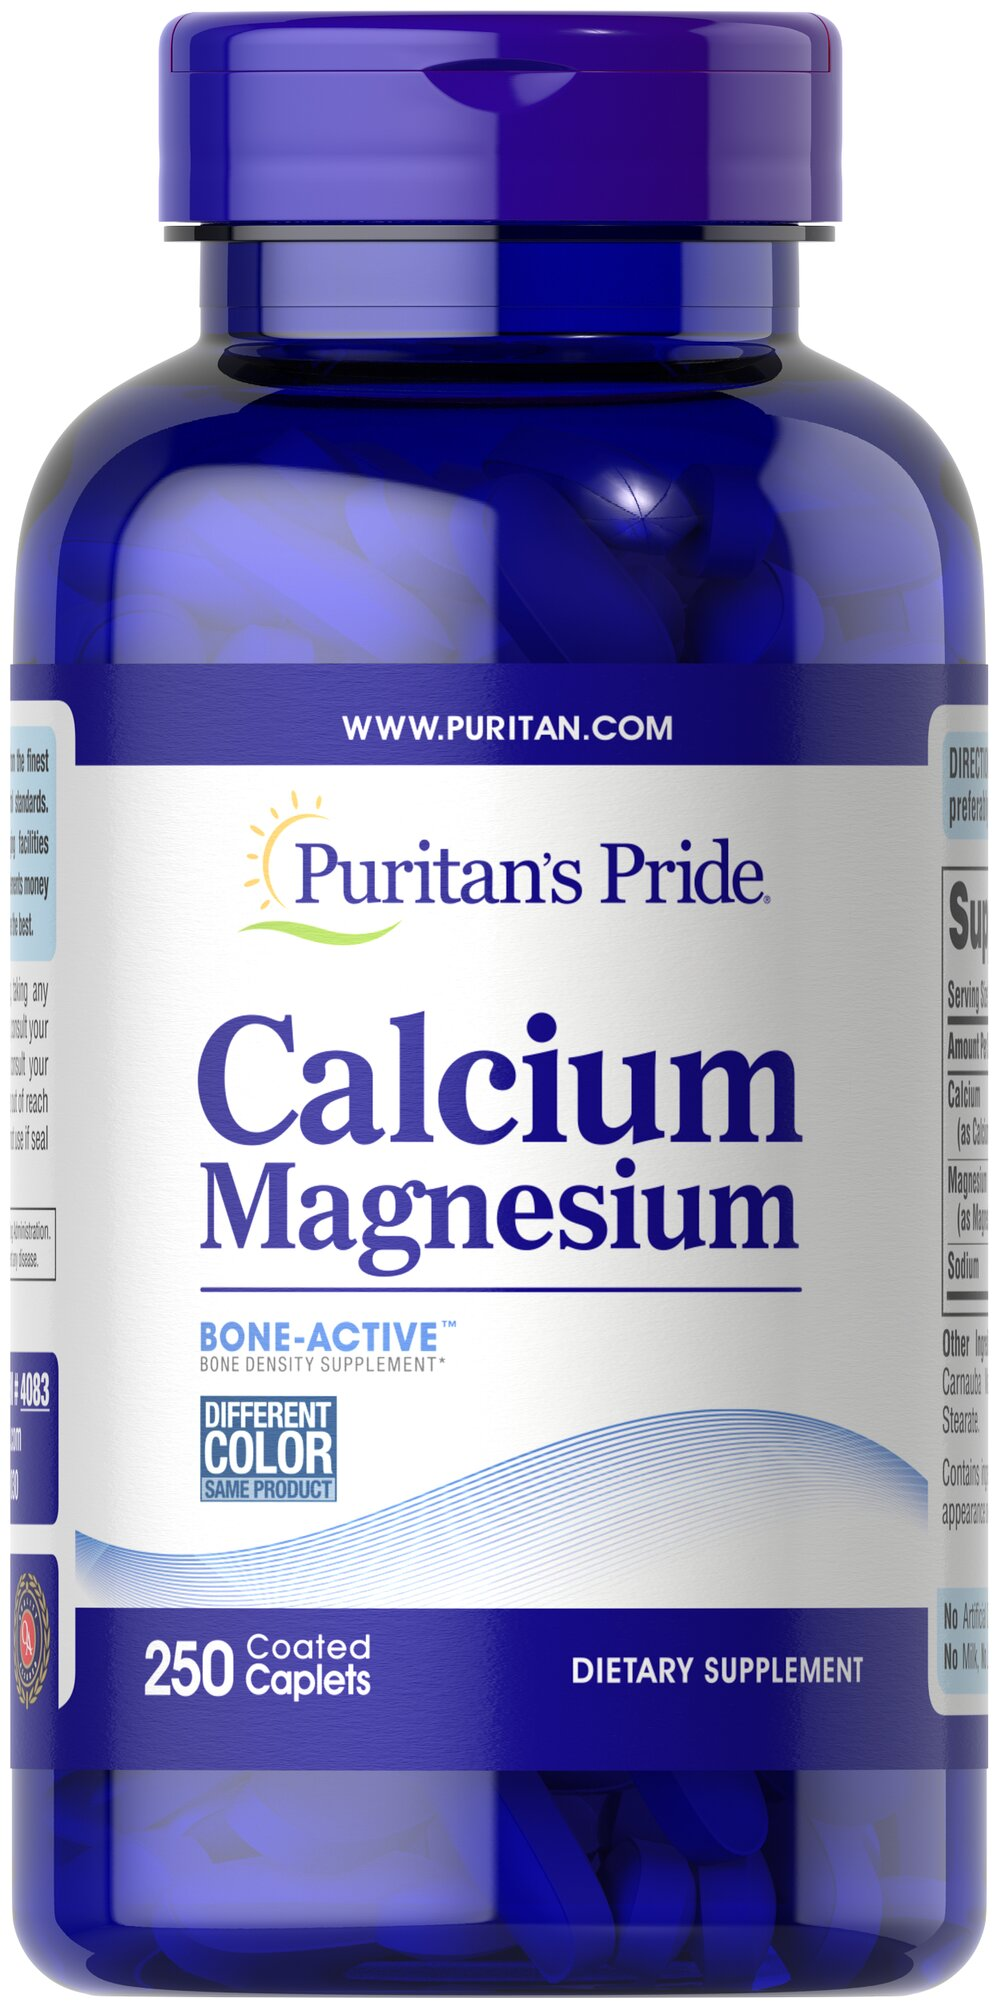 Calcium Magnesium Chelated <p>Looking for extra support for your bones?</p><p>Puritan's Pride offers a high quality Calcium and Magnesium supplement that delivers 500 mg Calcium and 250 mg Magnesium in a chelated form for optimal absorption.</p> 250 Caplets 500 mg/250 mg $21.99